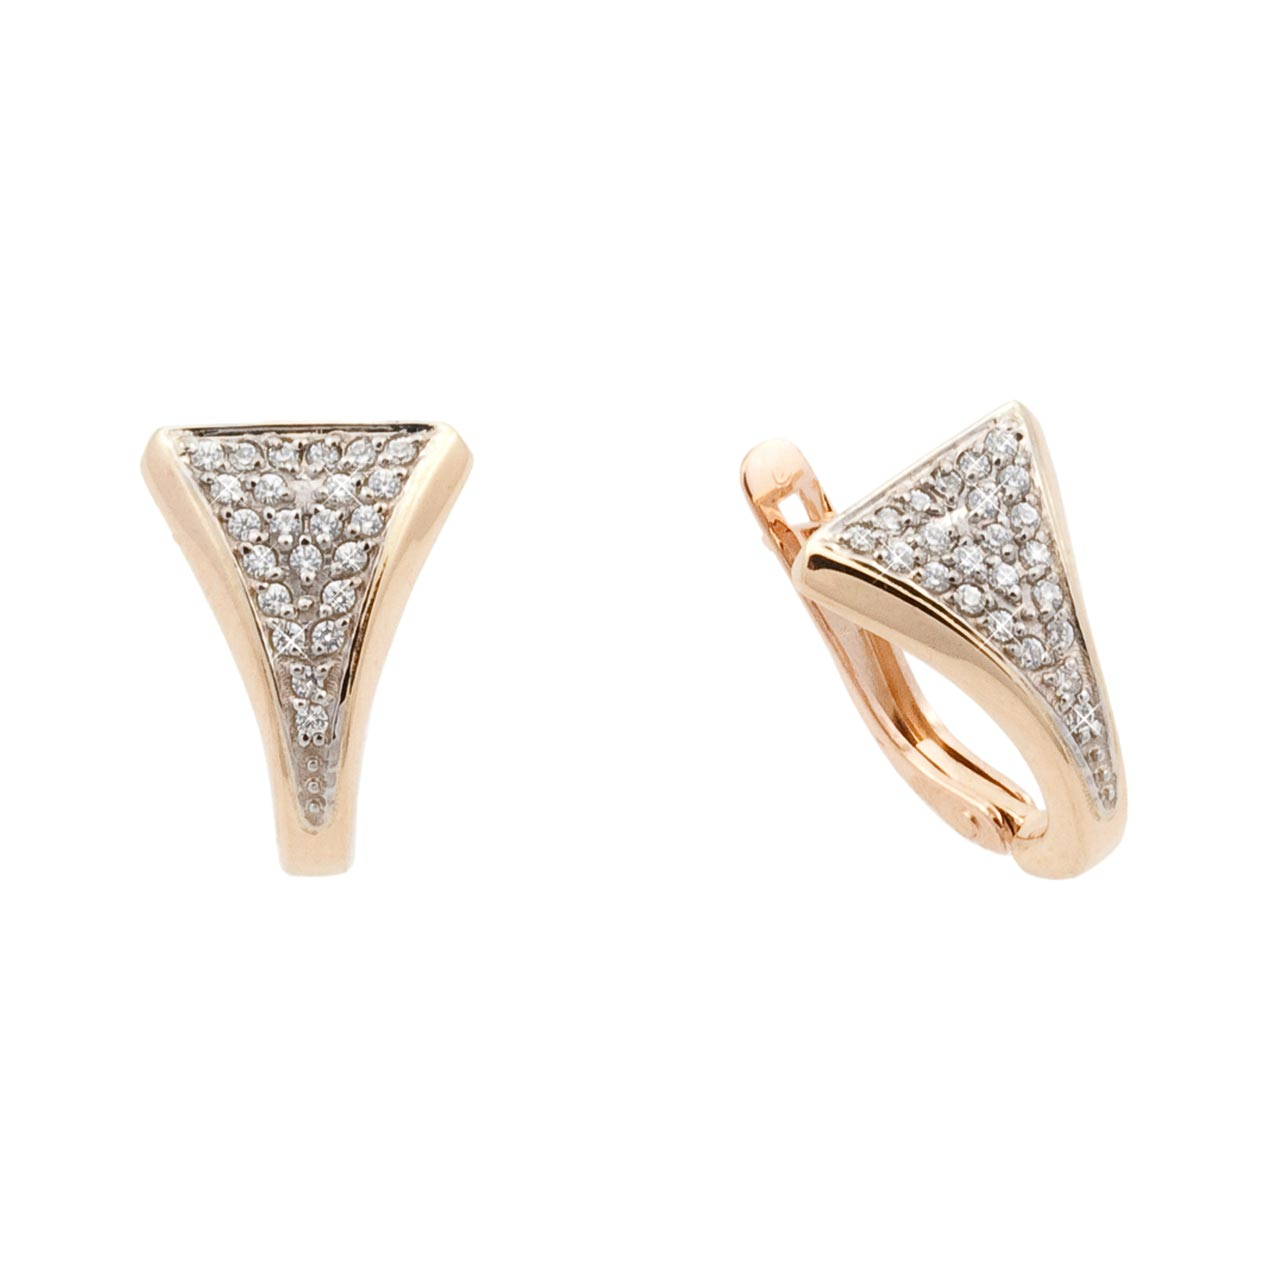 Pavé set CZ two tone gold earrings 1